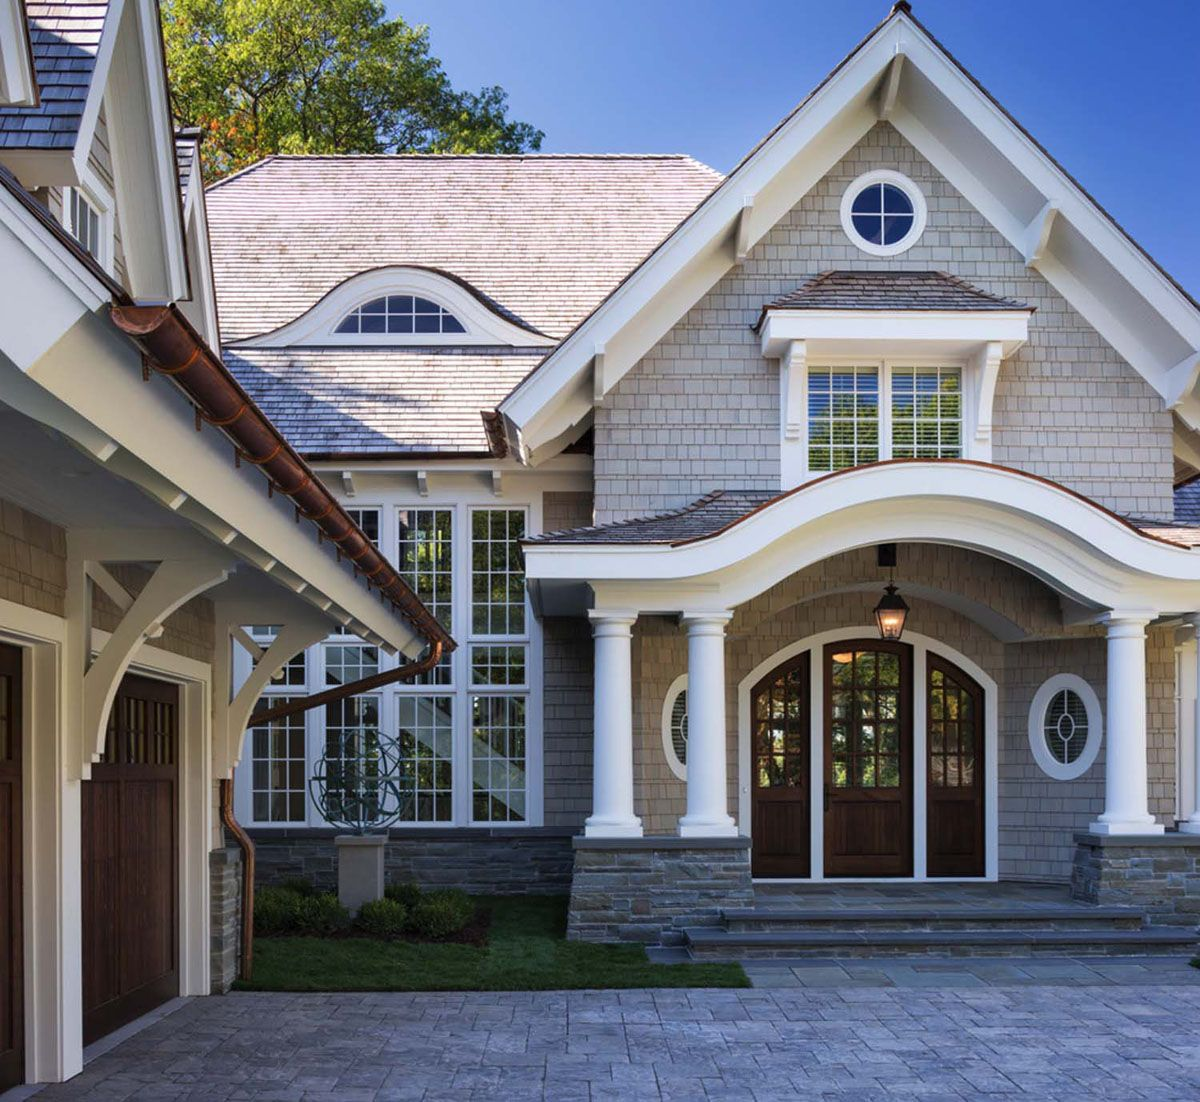 Exterior Home Styles: Shingle Style Lakeside Cottage Mansion